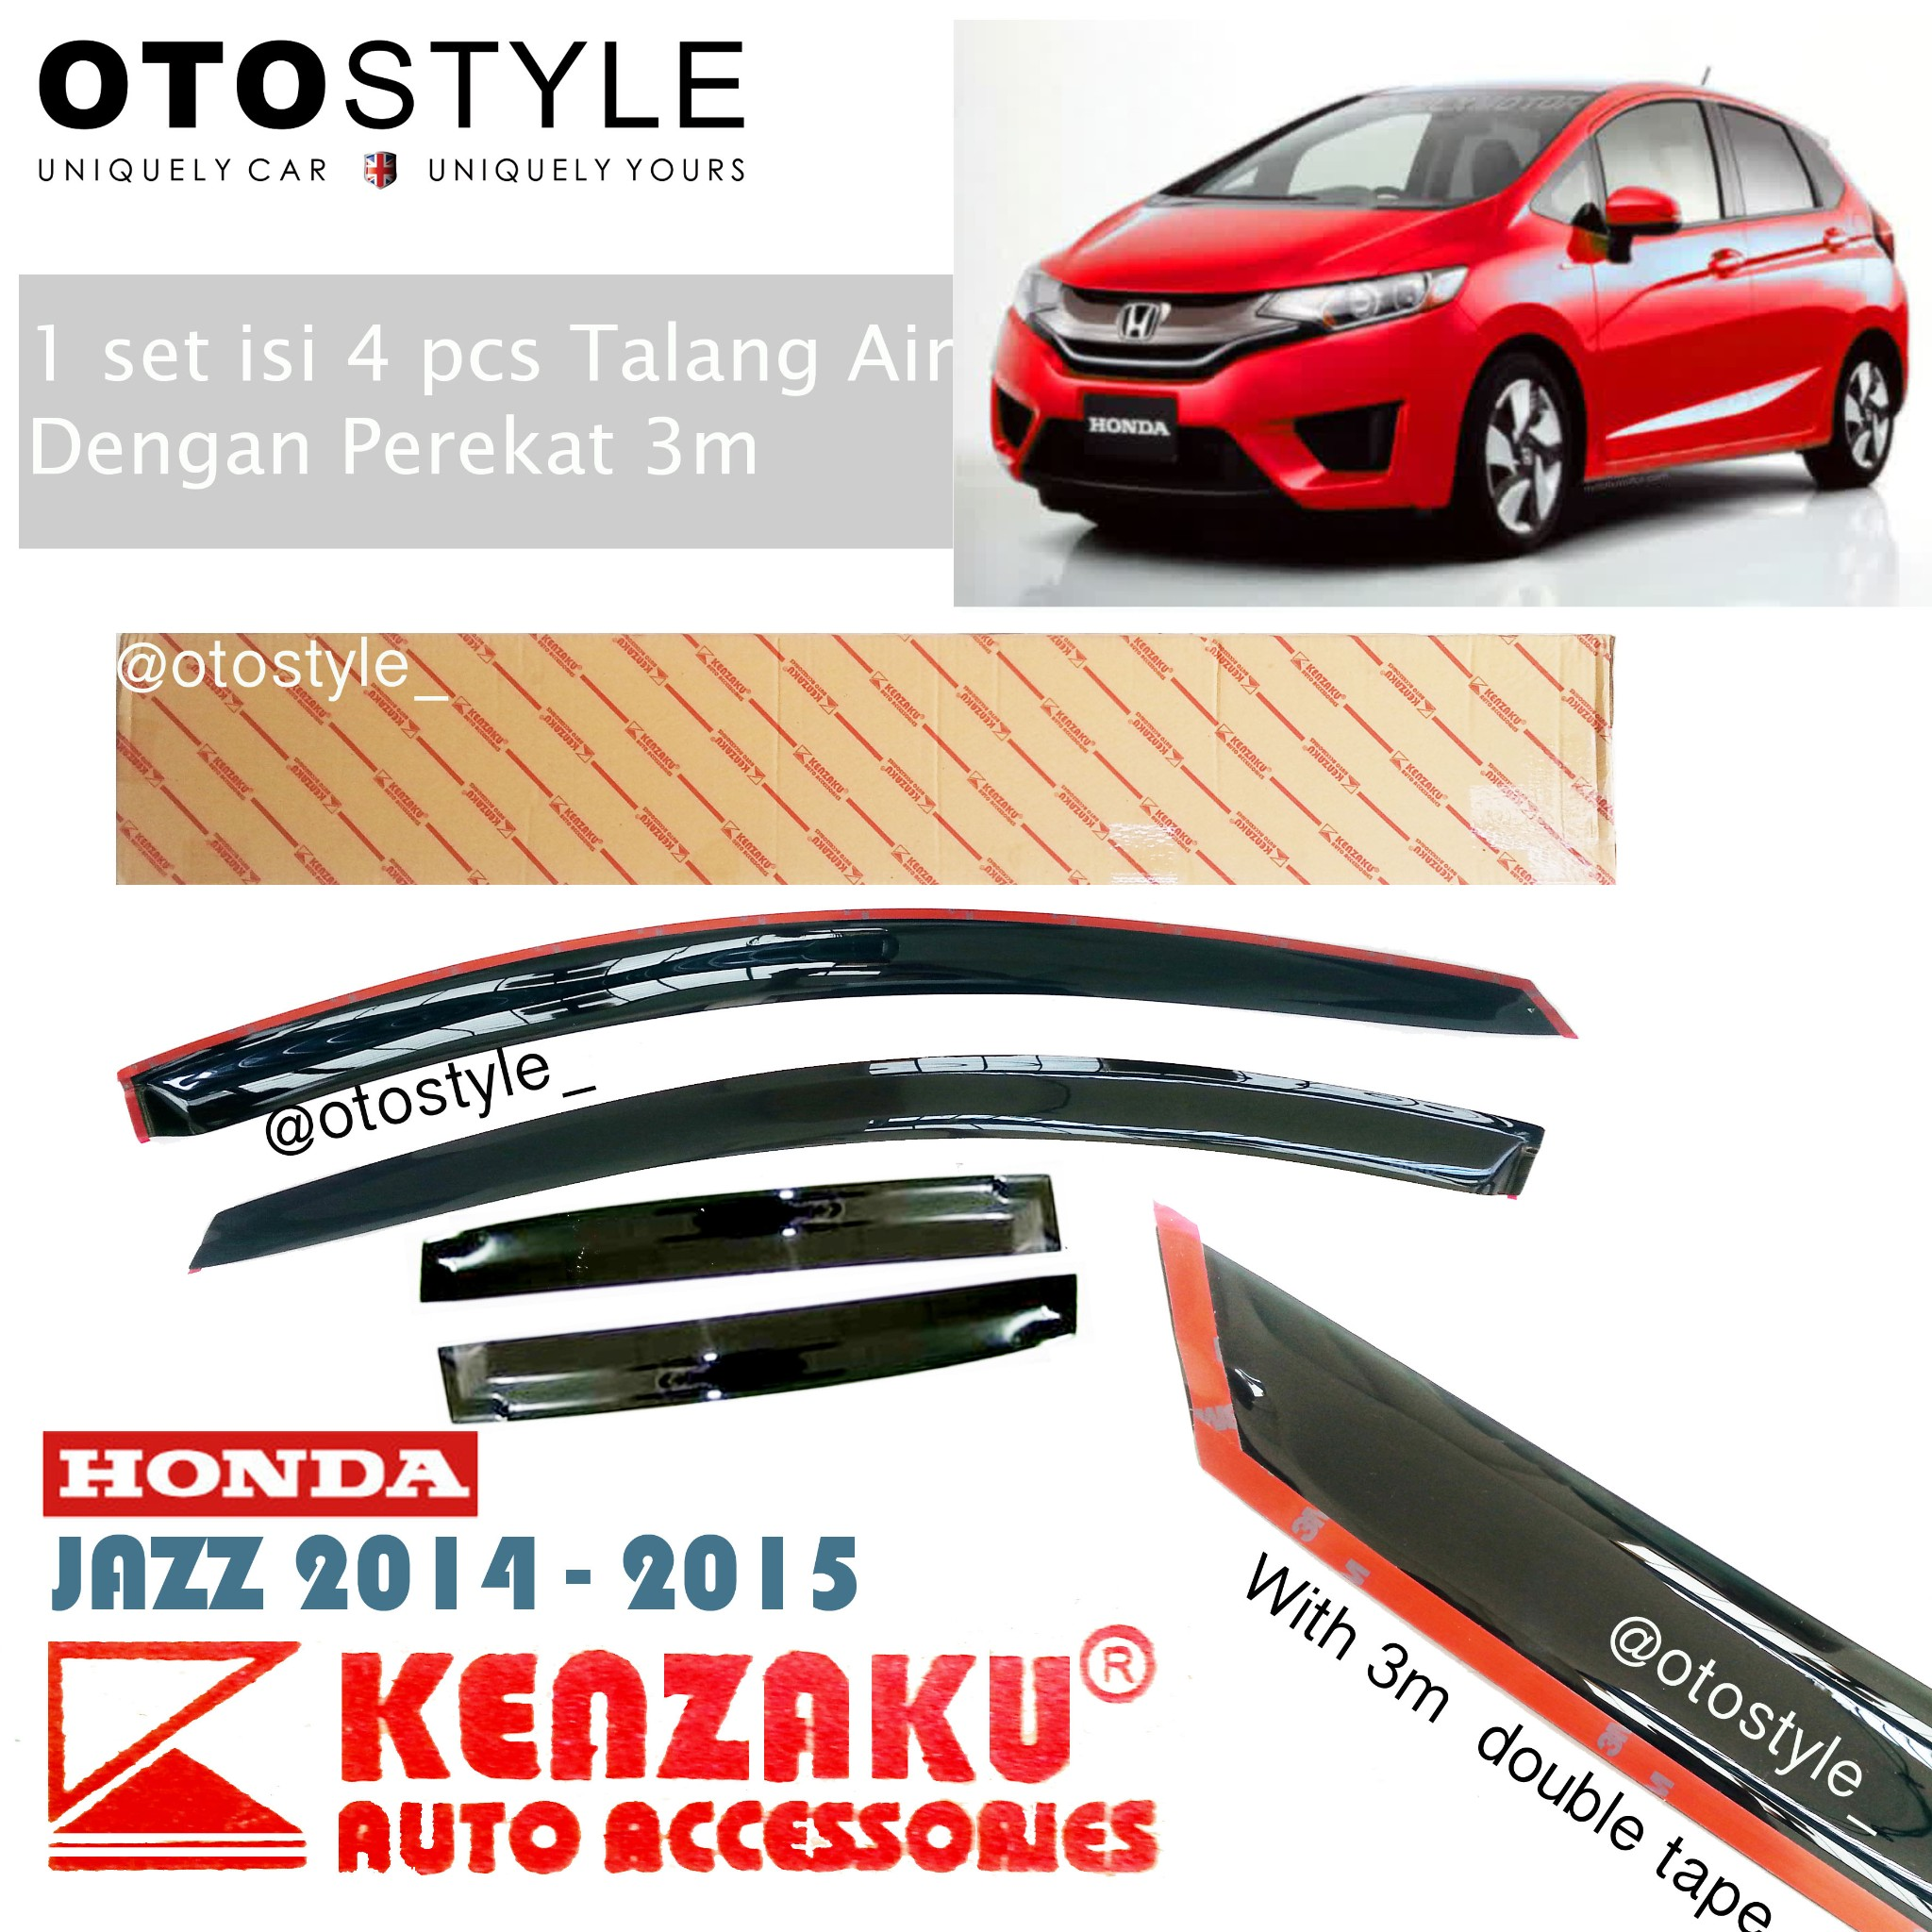 Talang Air HONDA all new JAZZ 2014-2015 premium kenzaku